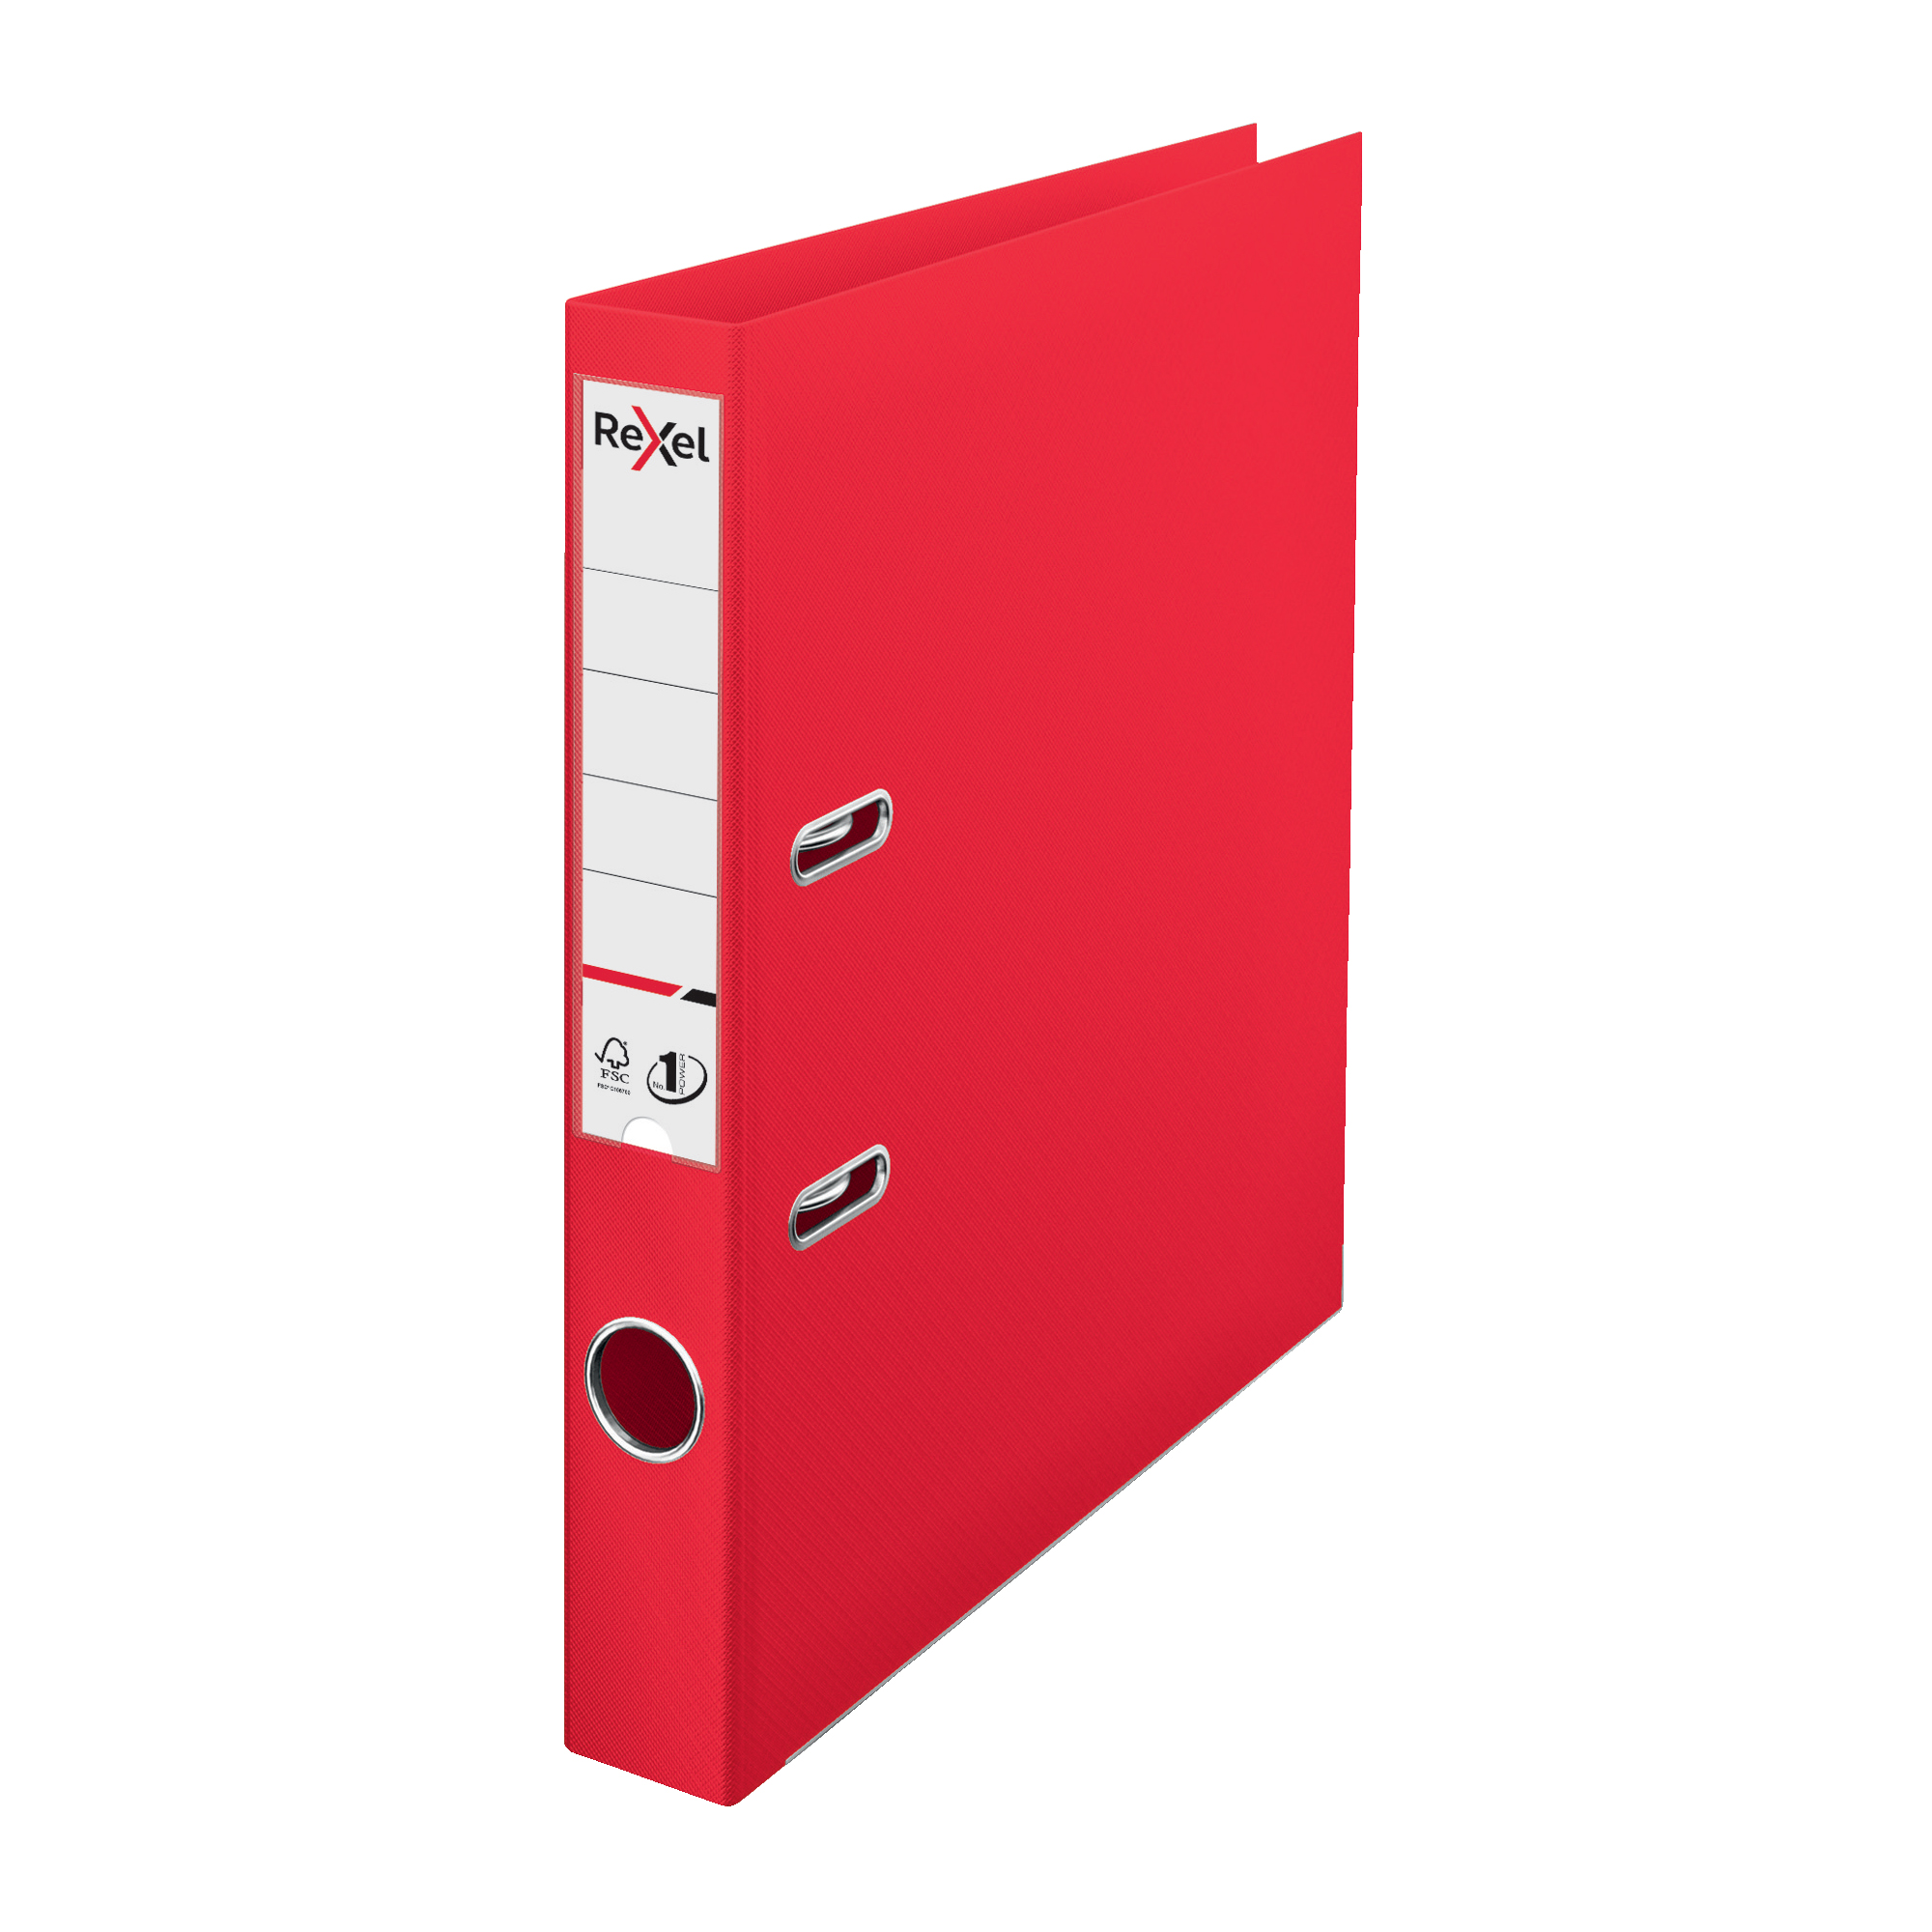 Lever arch file Rexel Choices LArch File PP 50mm A4 Red Ref 2115508